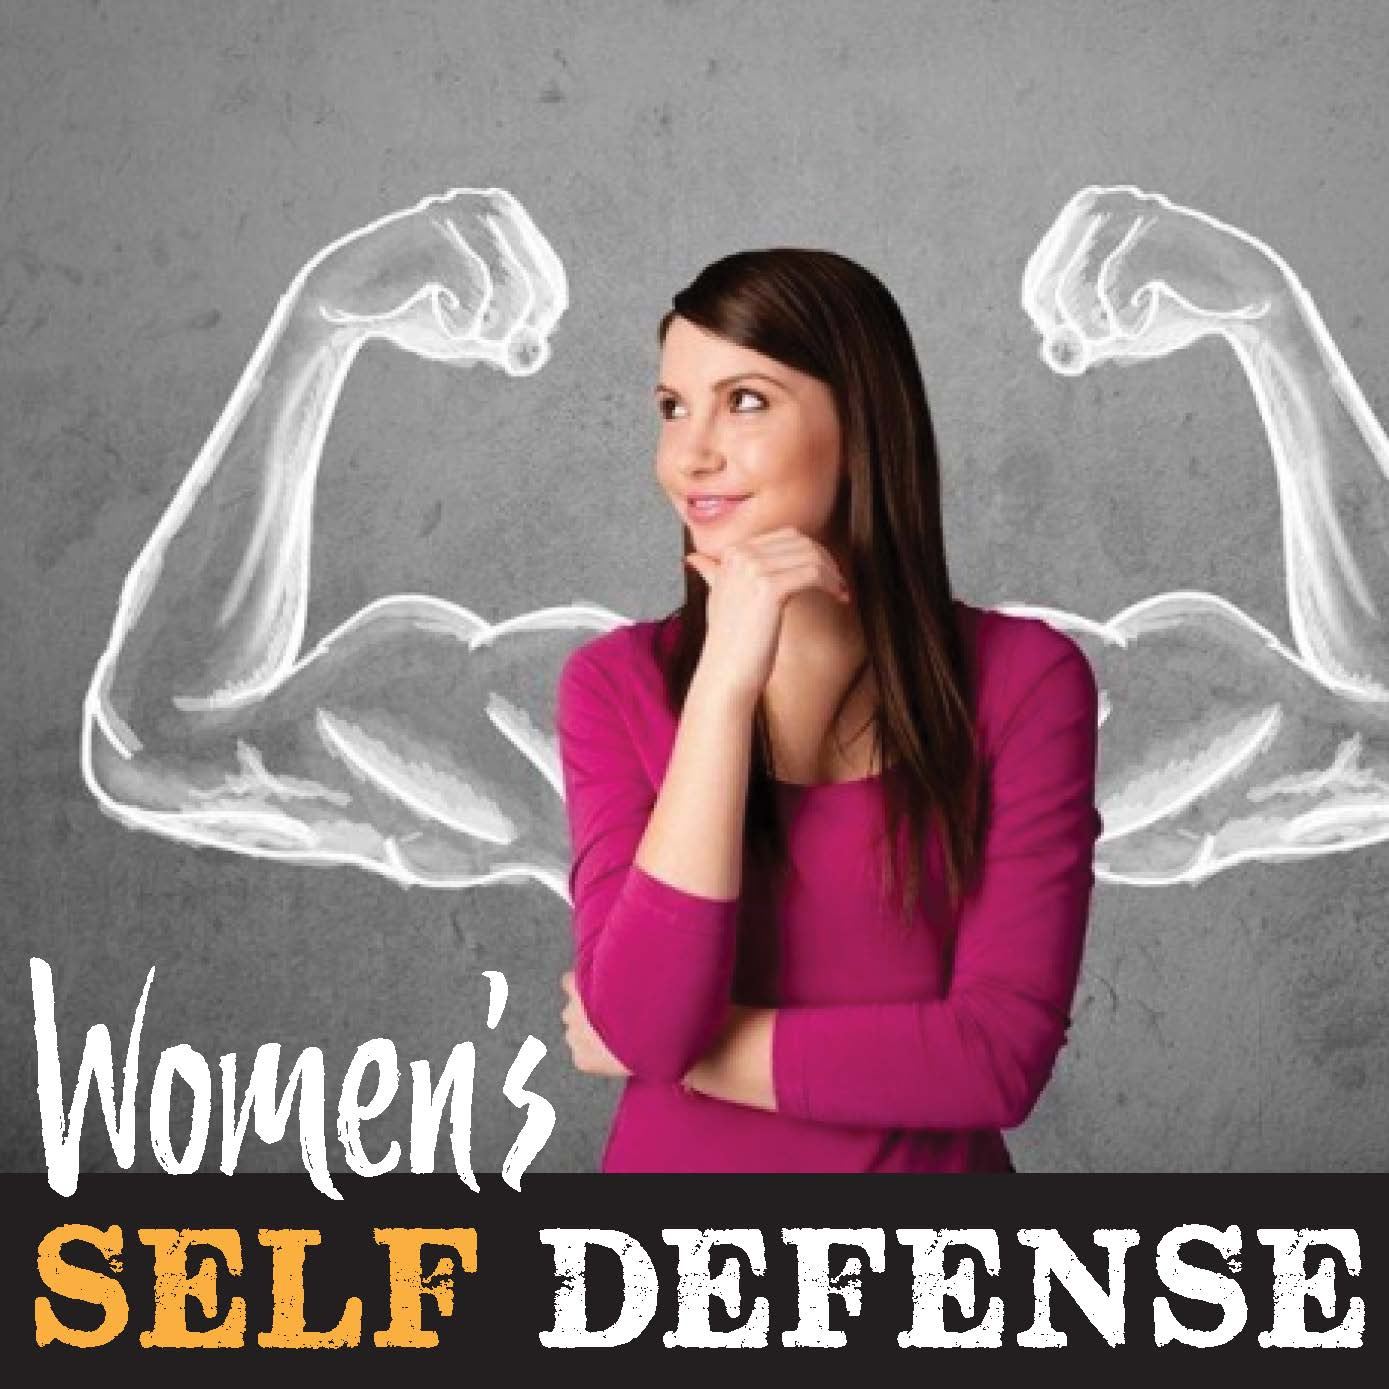 Womens Self Defense Classes Logo